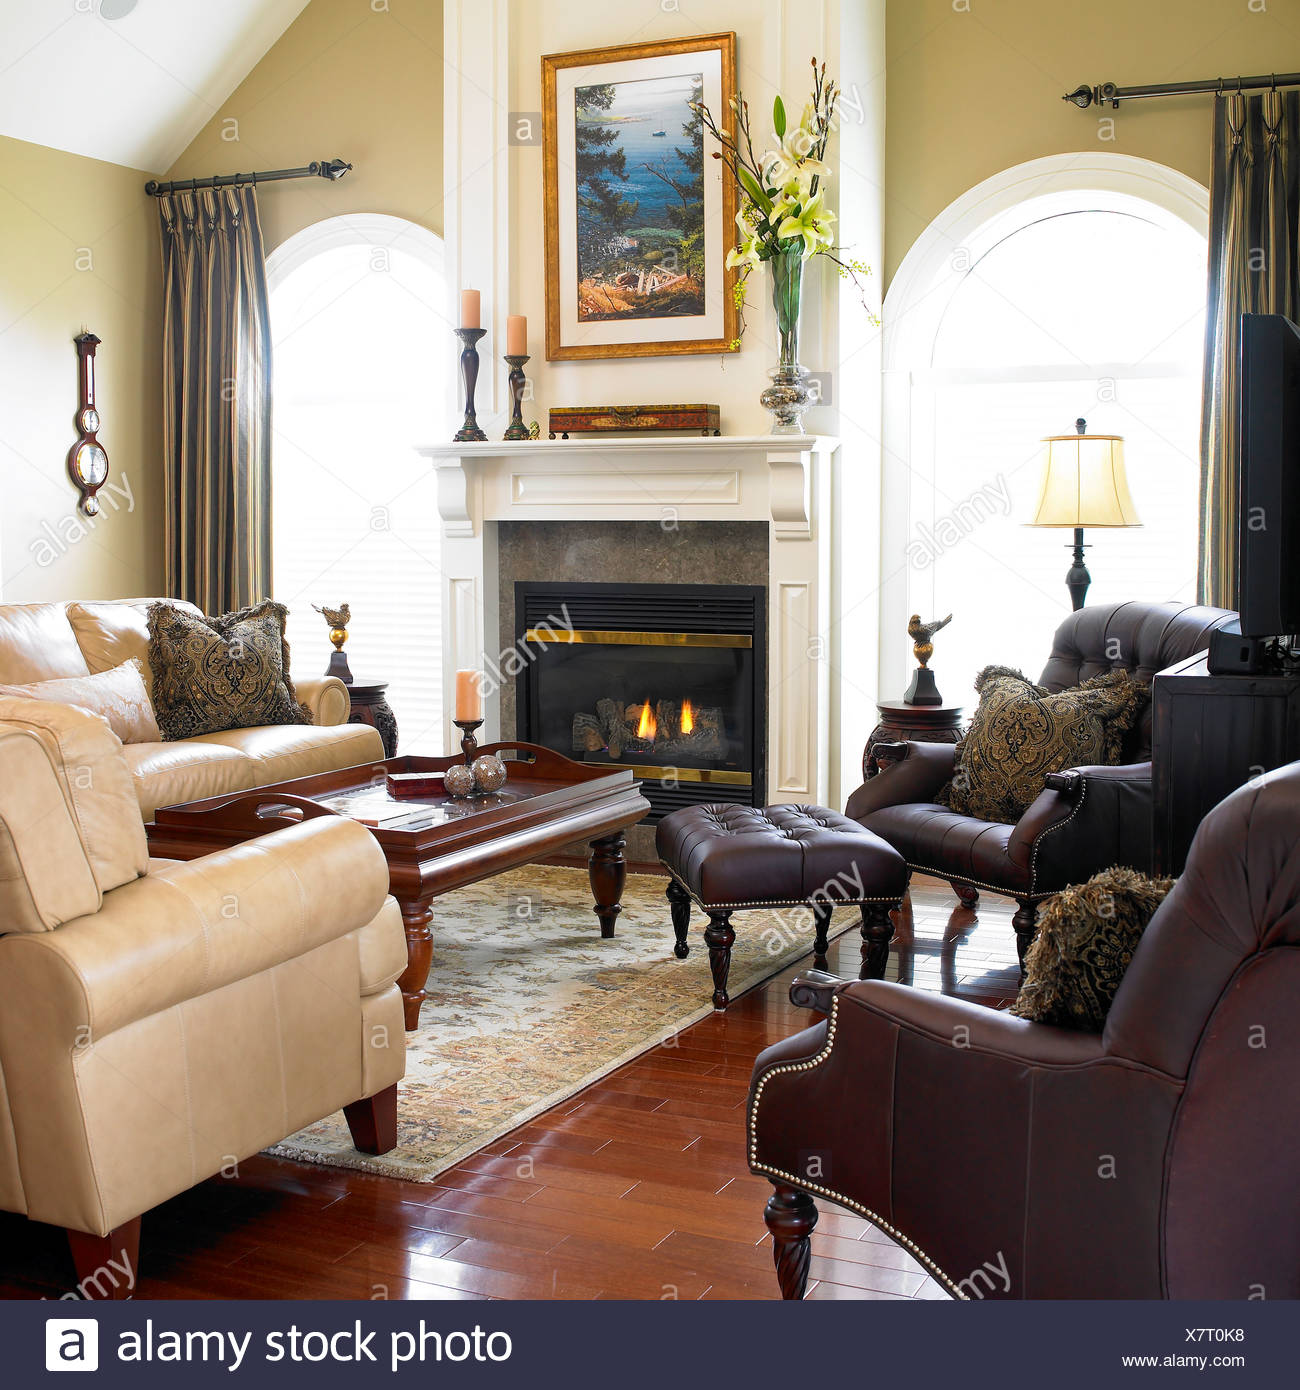 Contemporary living room with leather furniture and fireplace victoria vancouver island british columbia canada